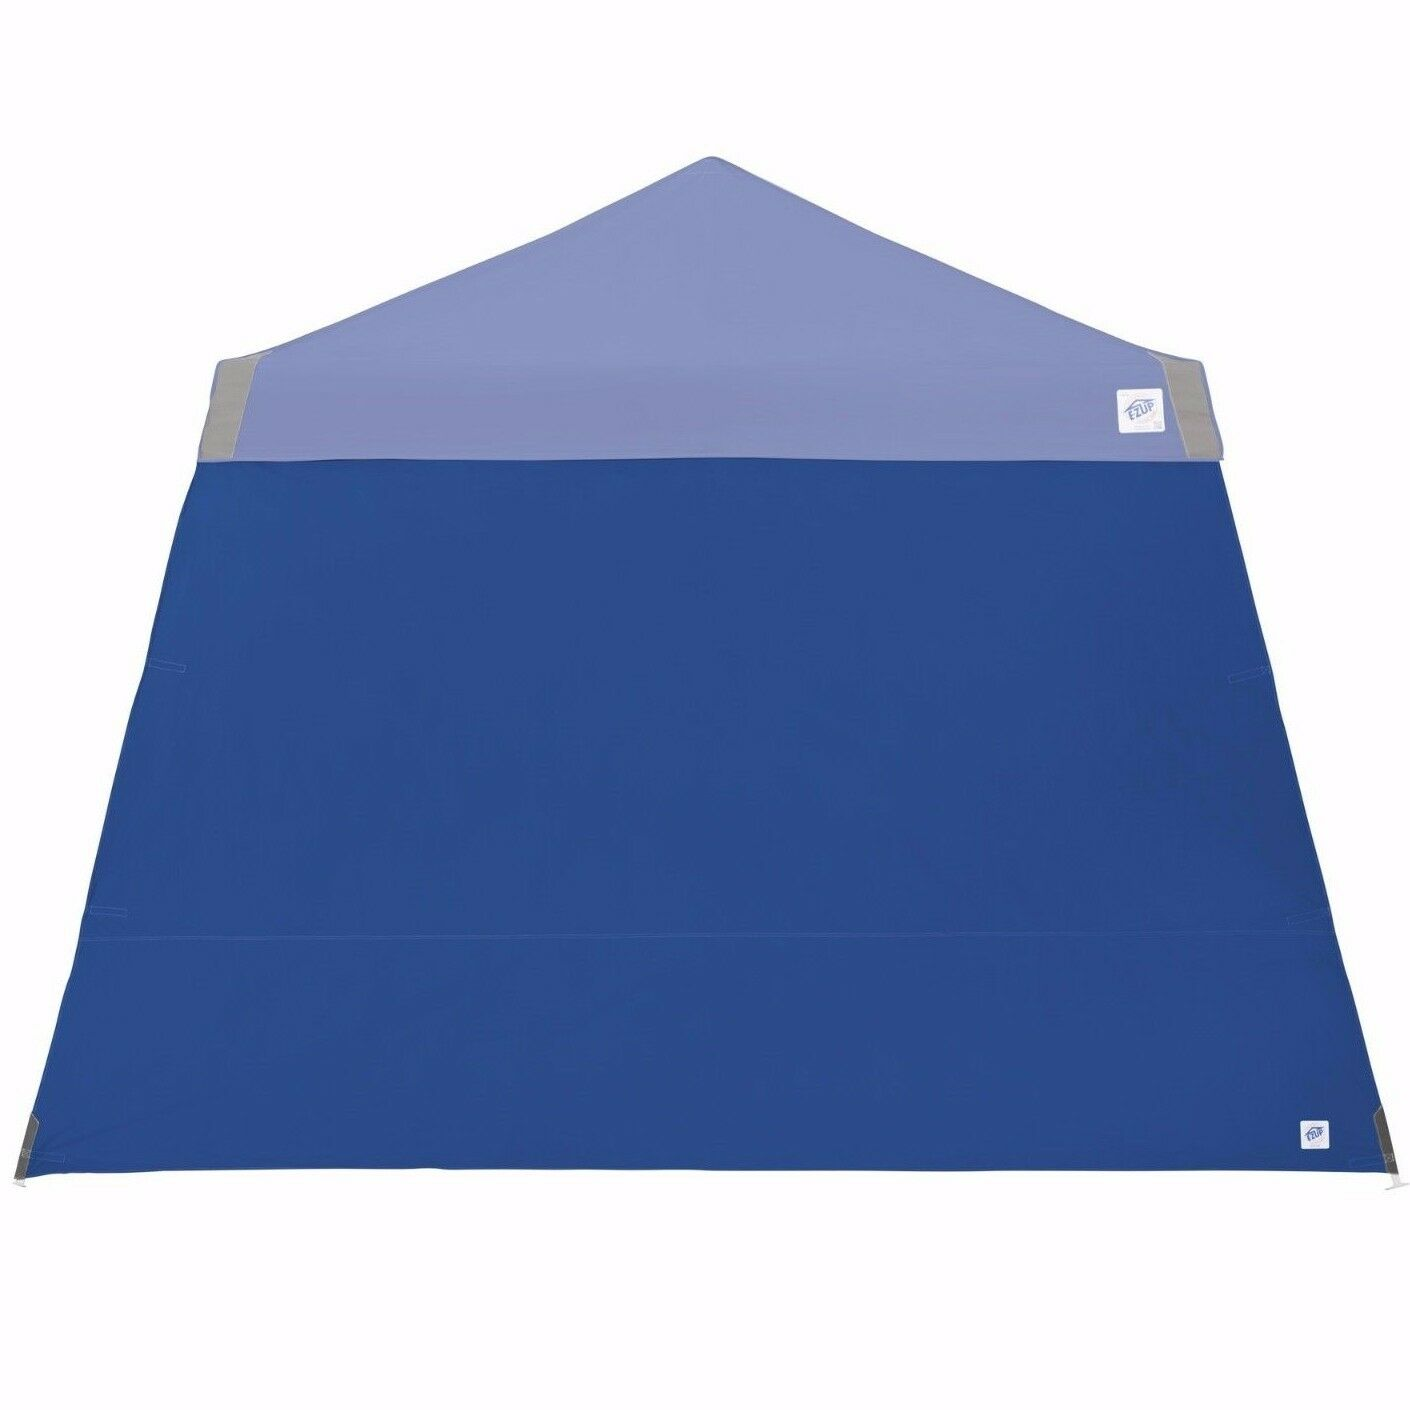 E-Z UP Recreational Sidewall -  Fits Angle Leg 12' Instant Shelter Royal bluee  hot limited edition